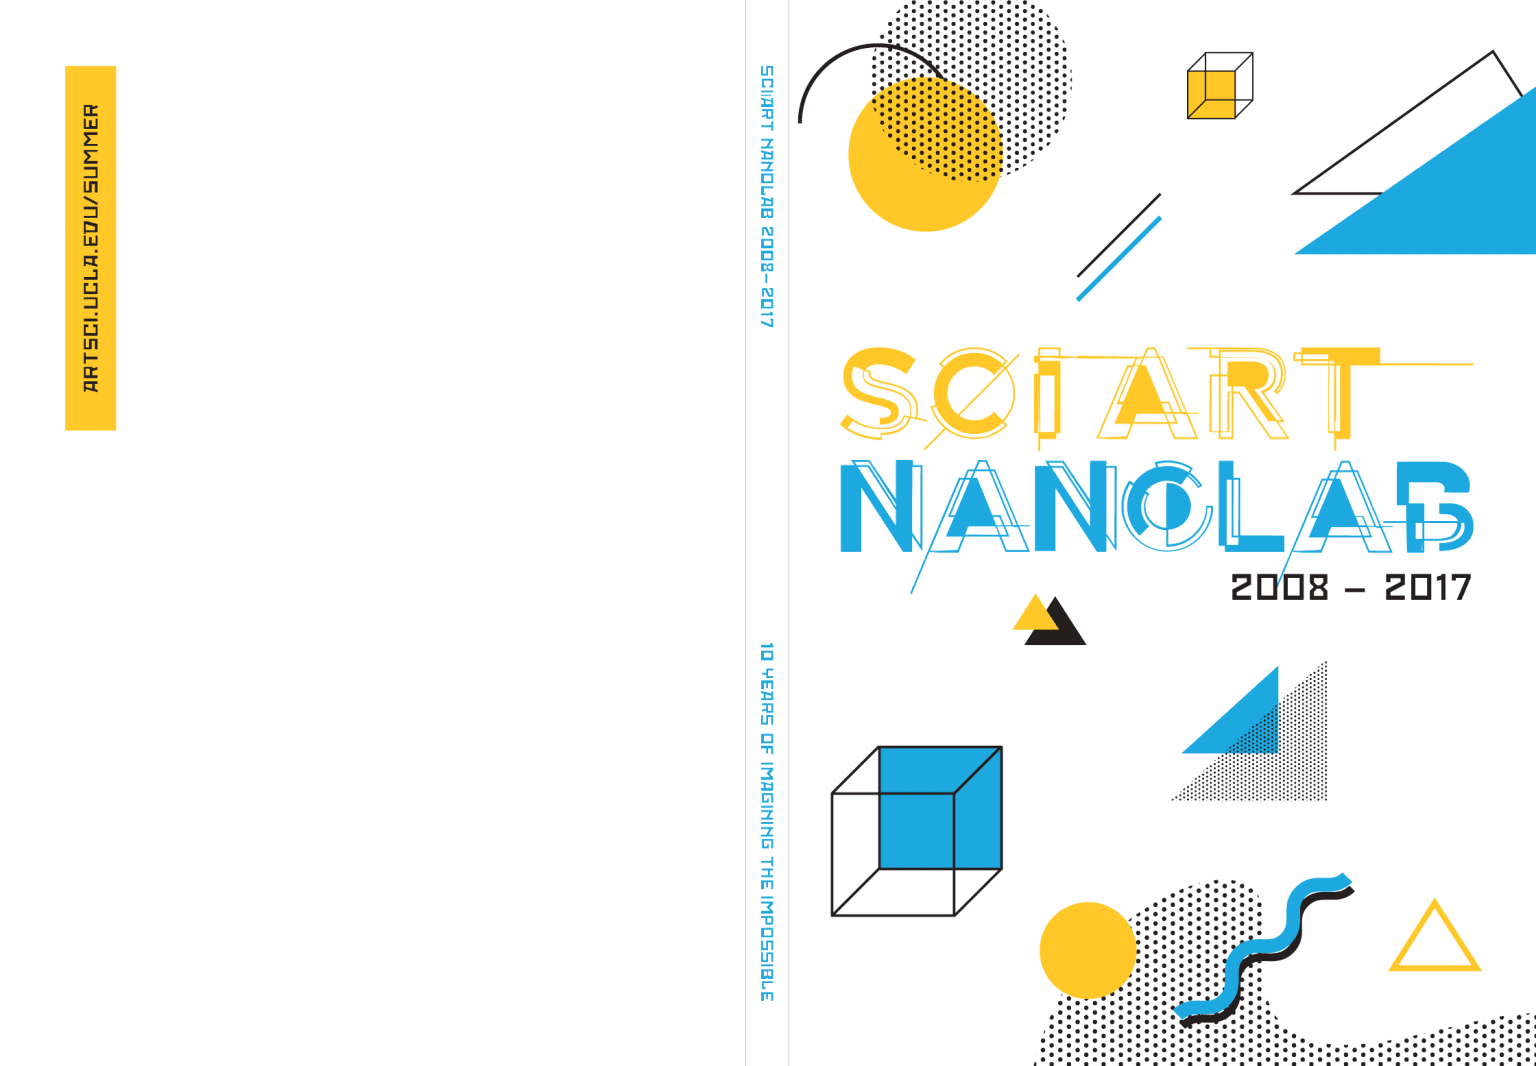 Sci|Art NanoLab Retrospective Book